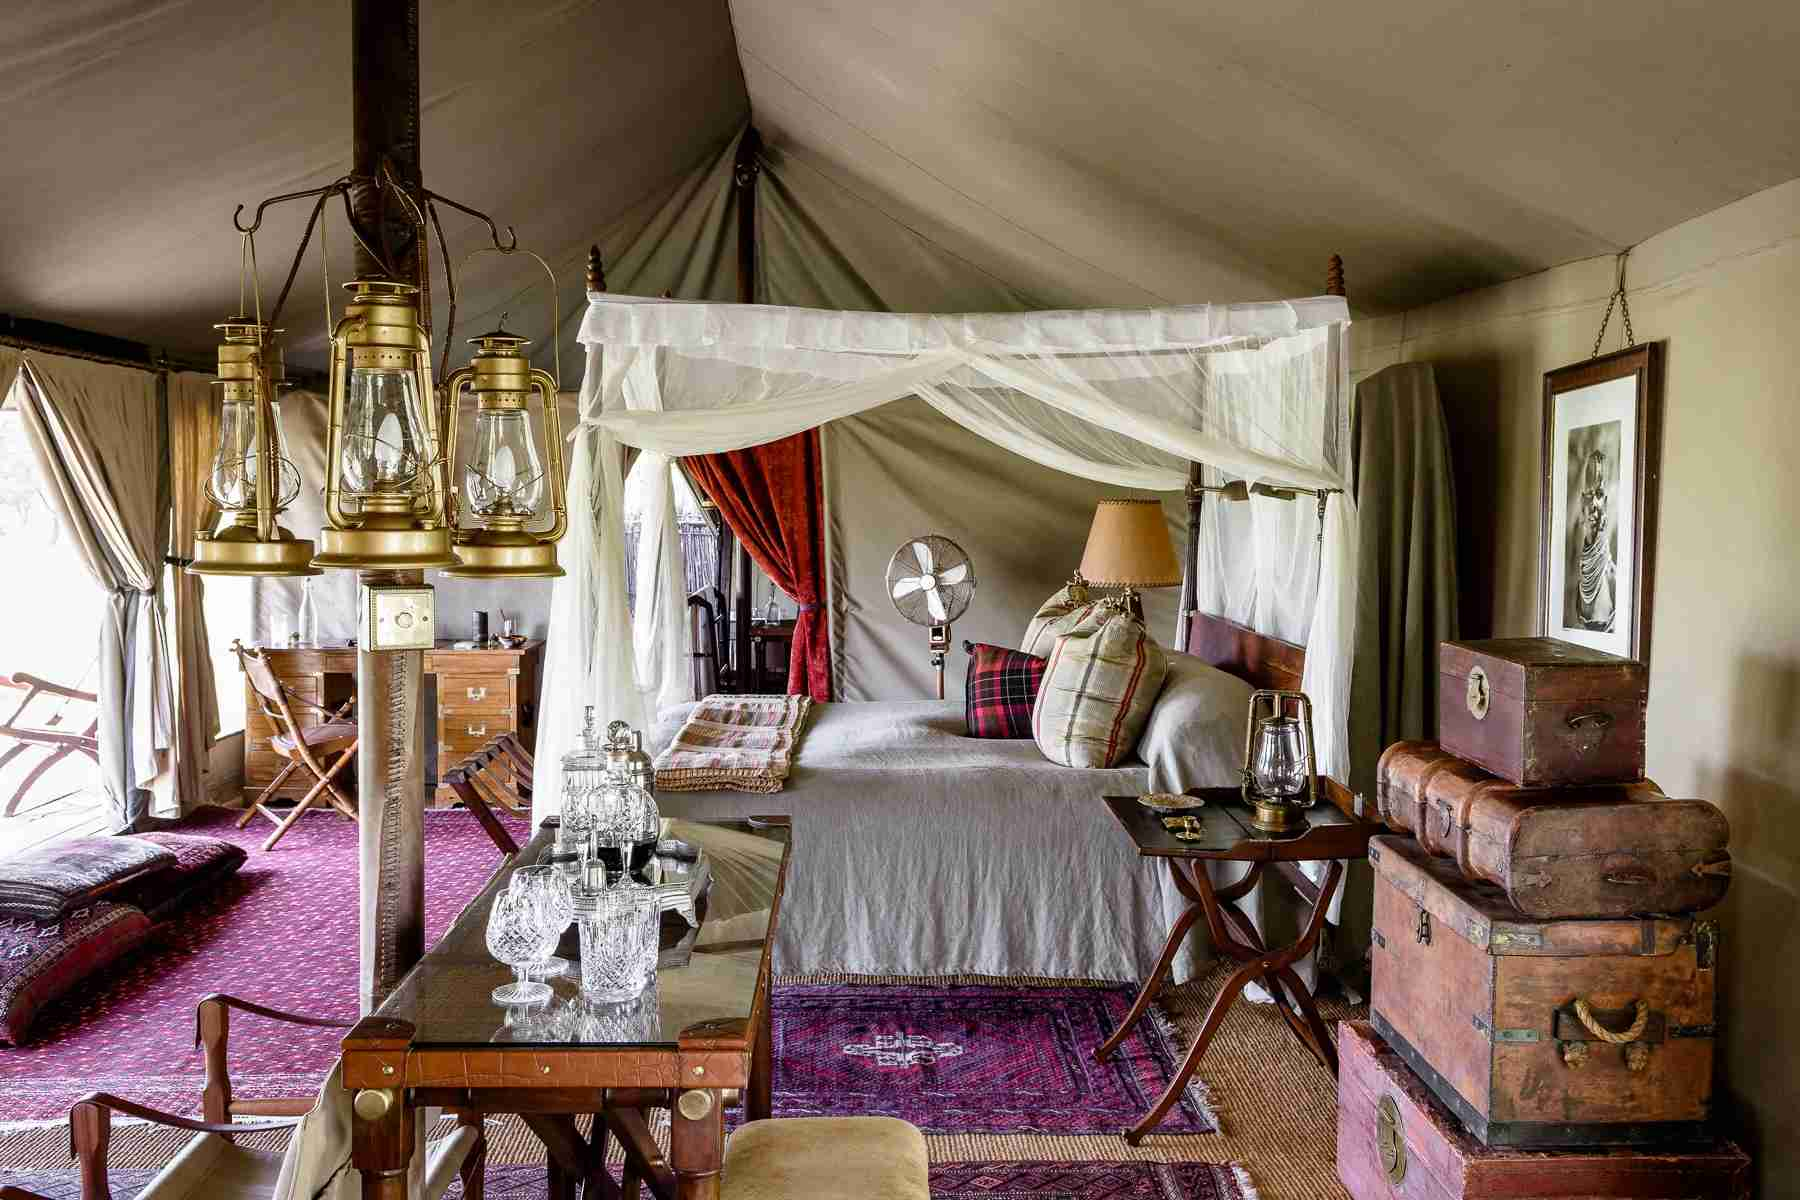 Image courtesy of Singita Sabora Tented Camp.